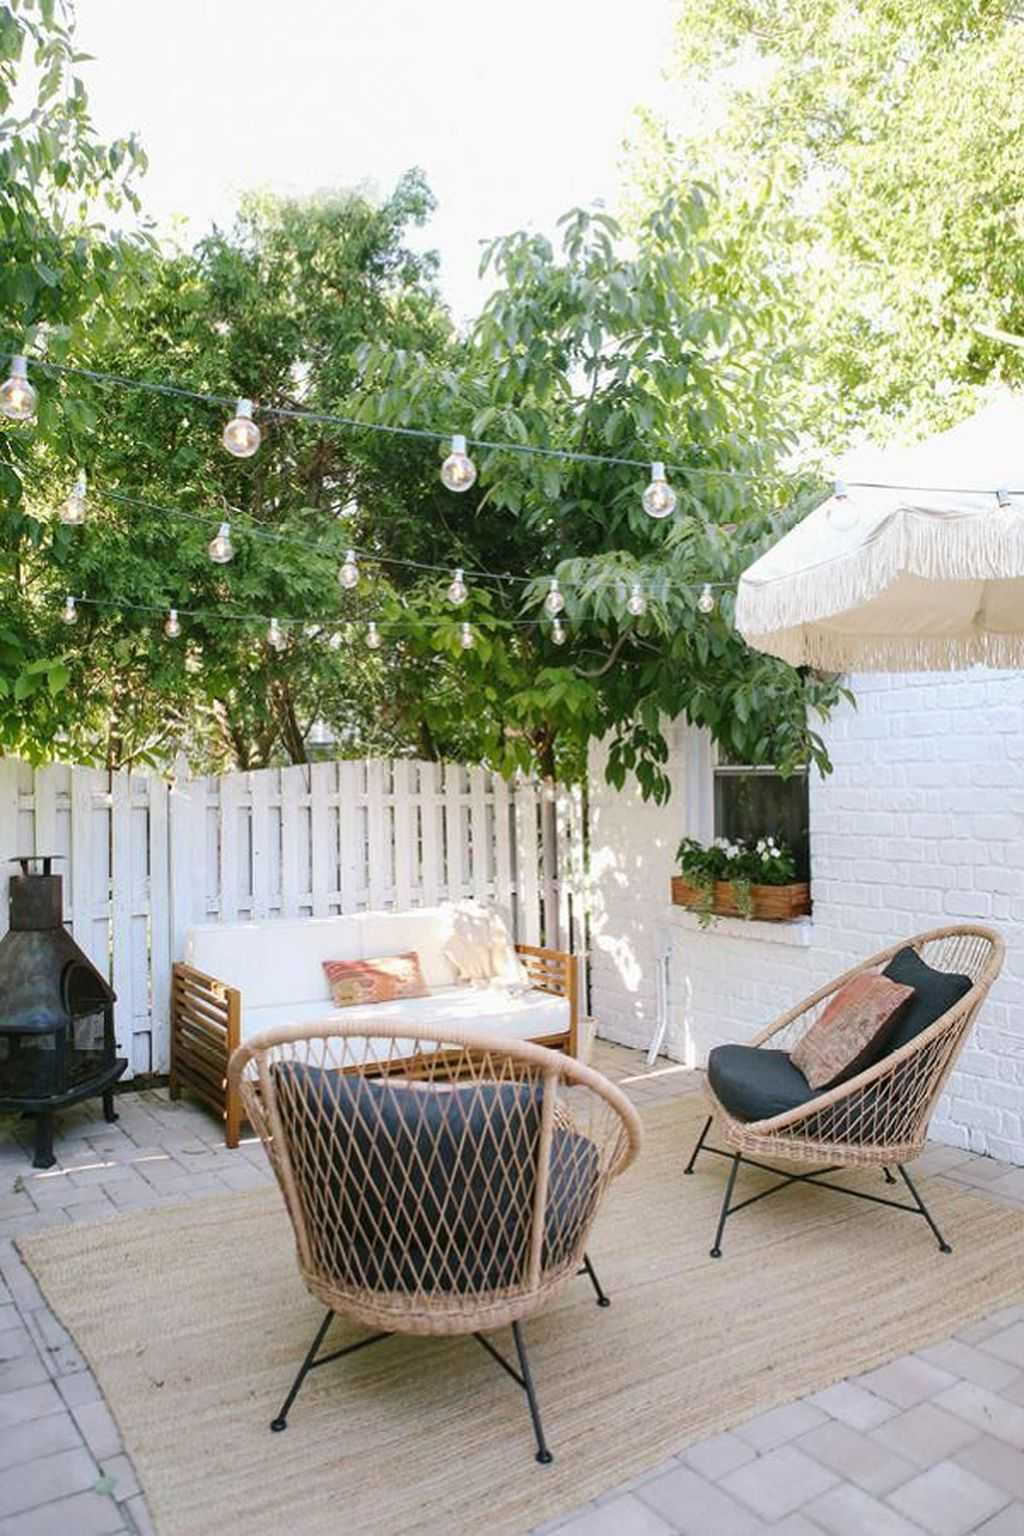 Admirable Cozy Patio Design Ideas To Relaxing On A Sunny Day 01